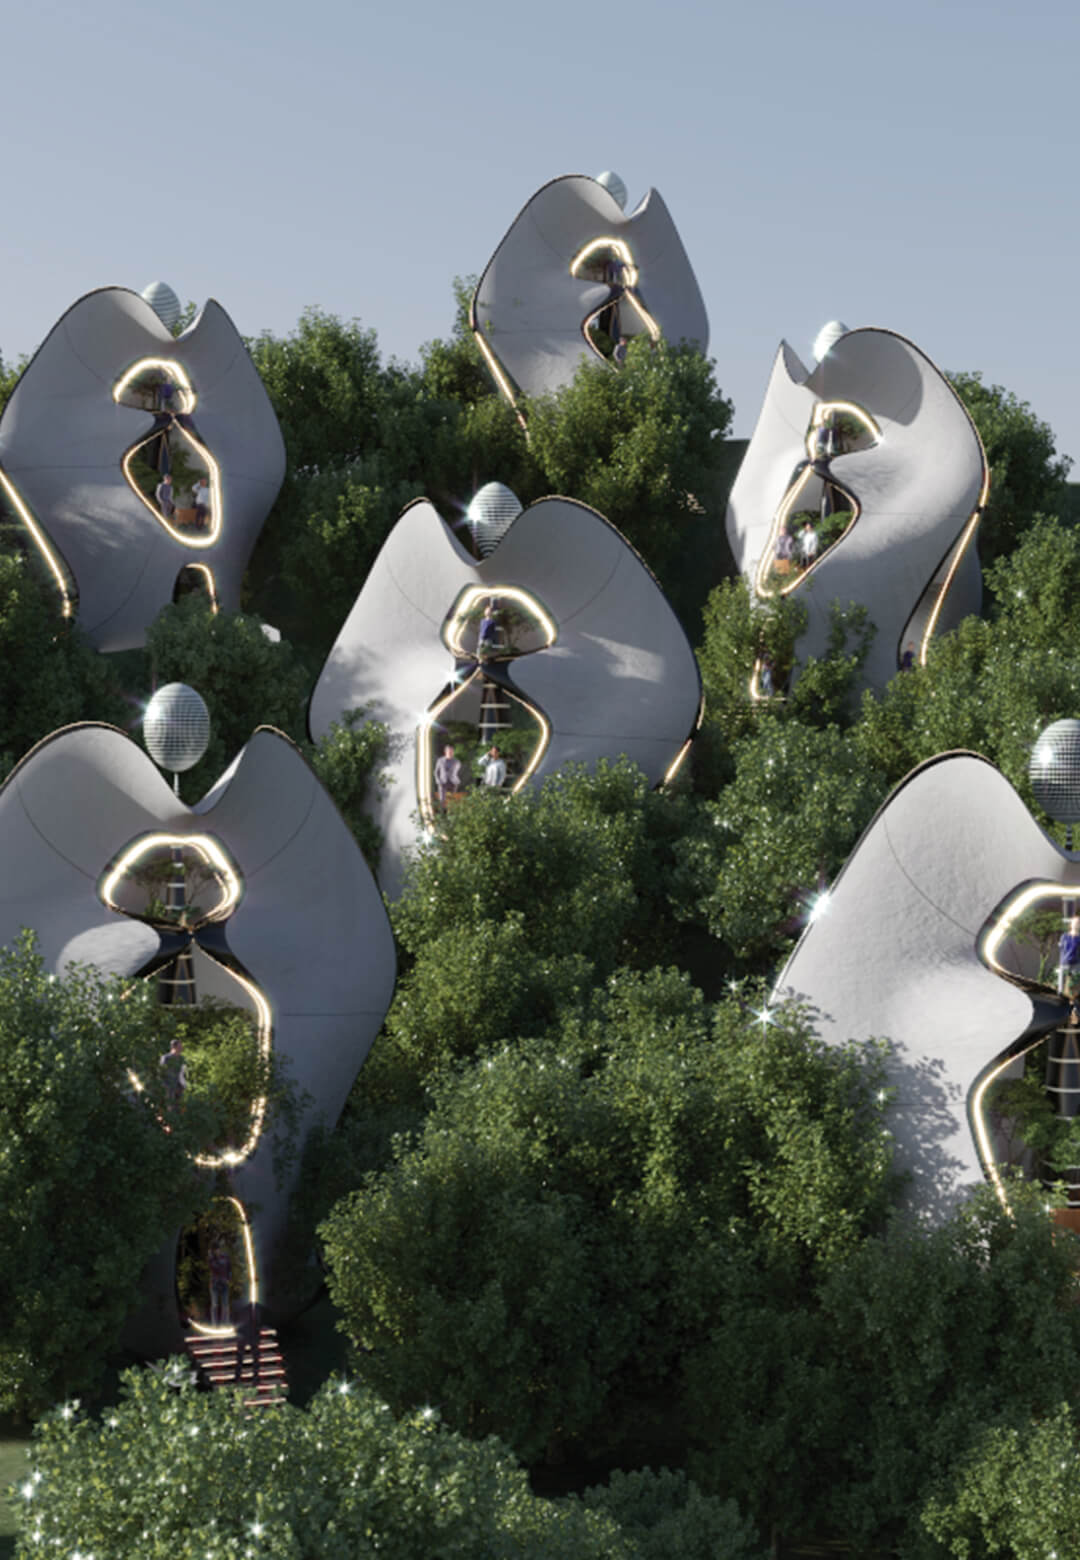 The proposed housing community is titled Mother Nature and is inspired by nature and Costantino Nivola's La Madre sculpture | Exosteel Mother Nature Modular Prefabricated Living Museum Houses | MASK Architects | STIRworld